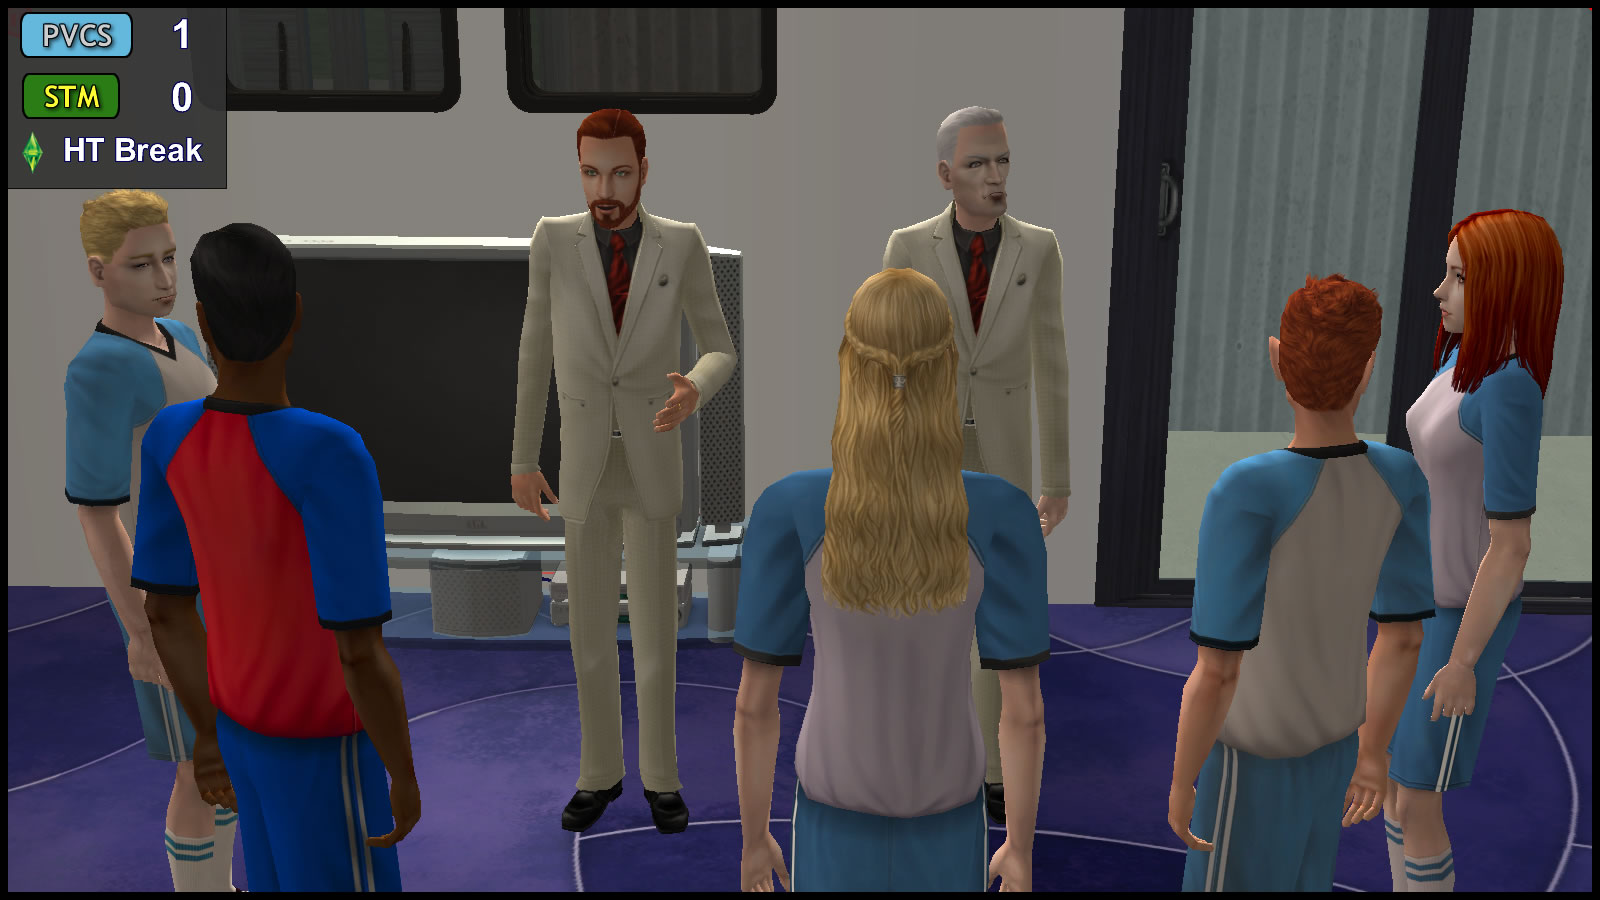 The sims 2 movie making cheats